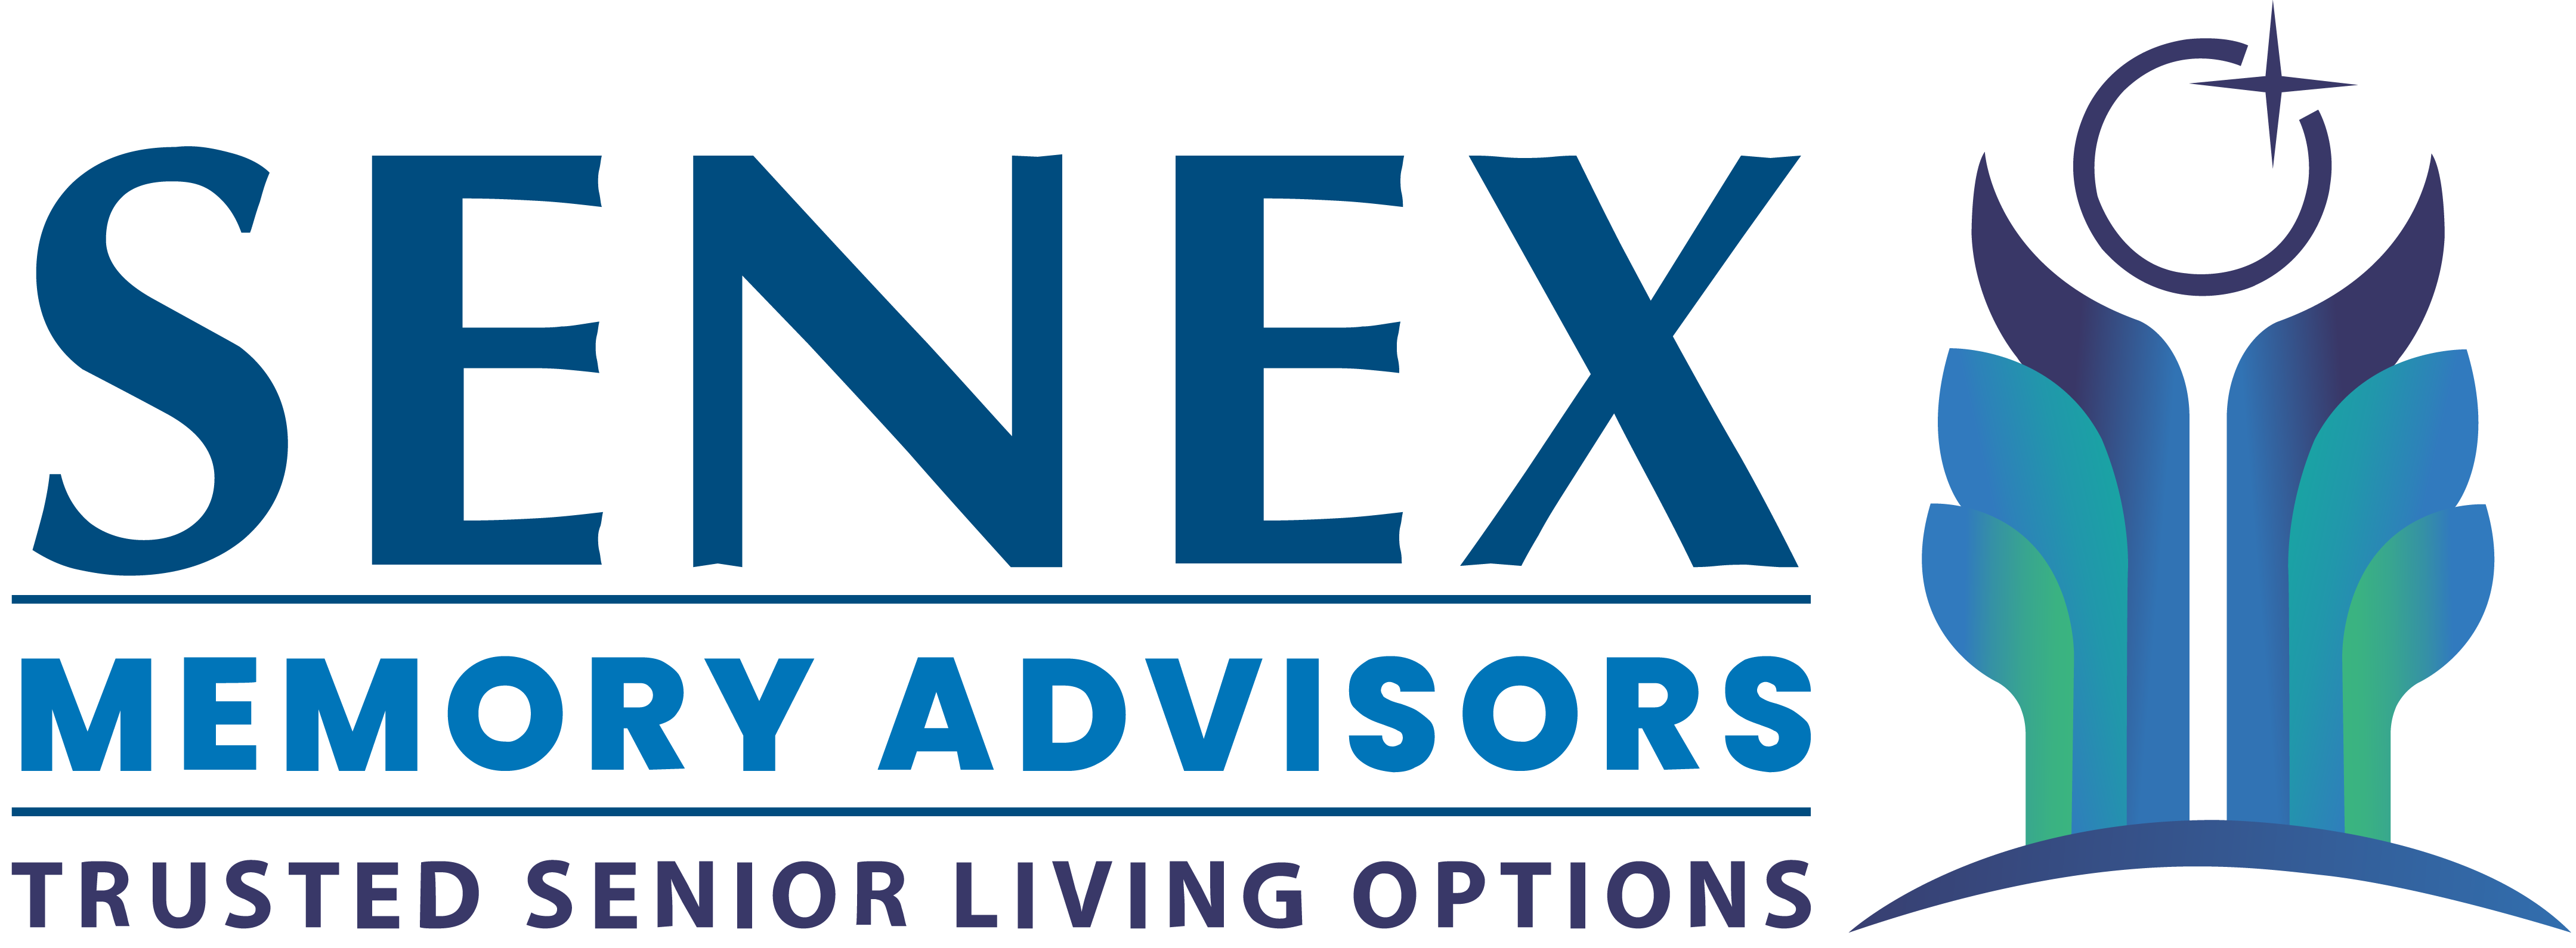 ASBICO Senior Living Advisor logo